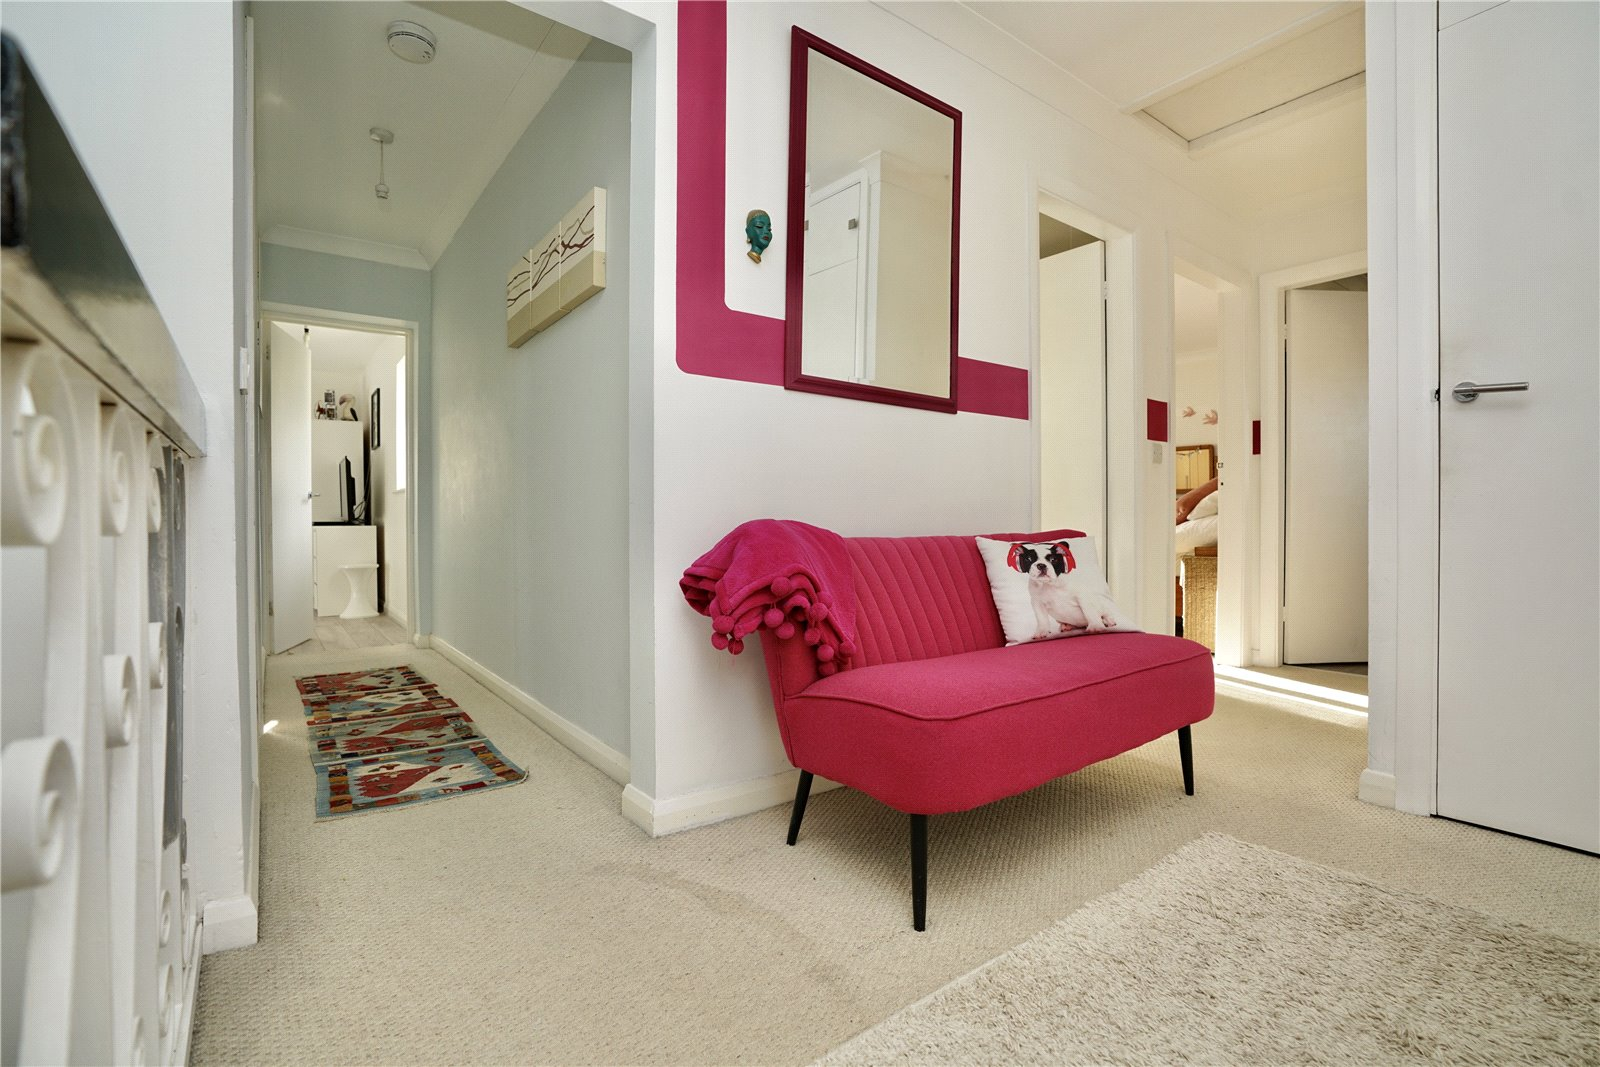 4 bed house for sale in Eaton Socon  - Property Image 7